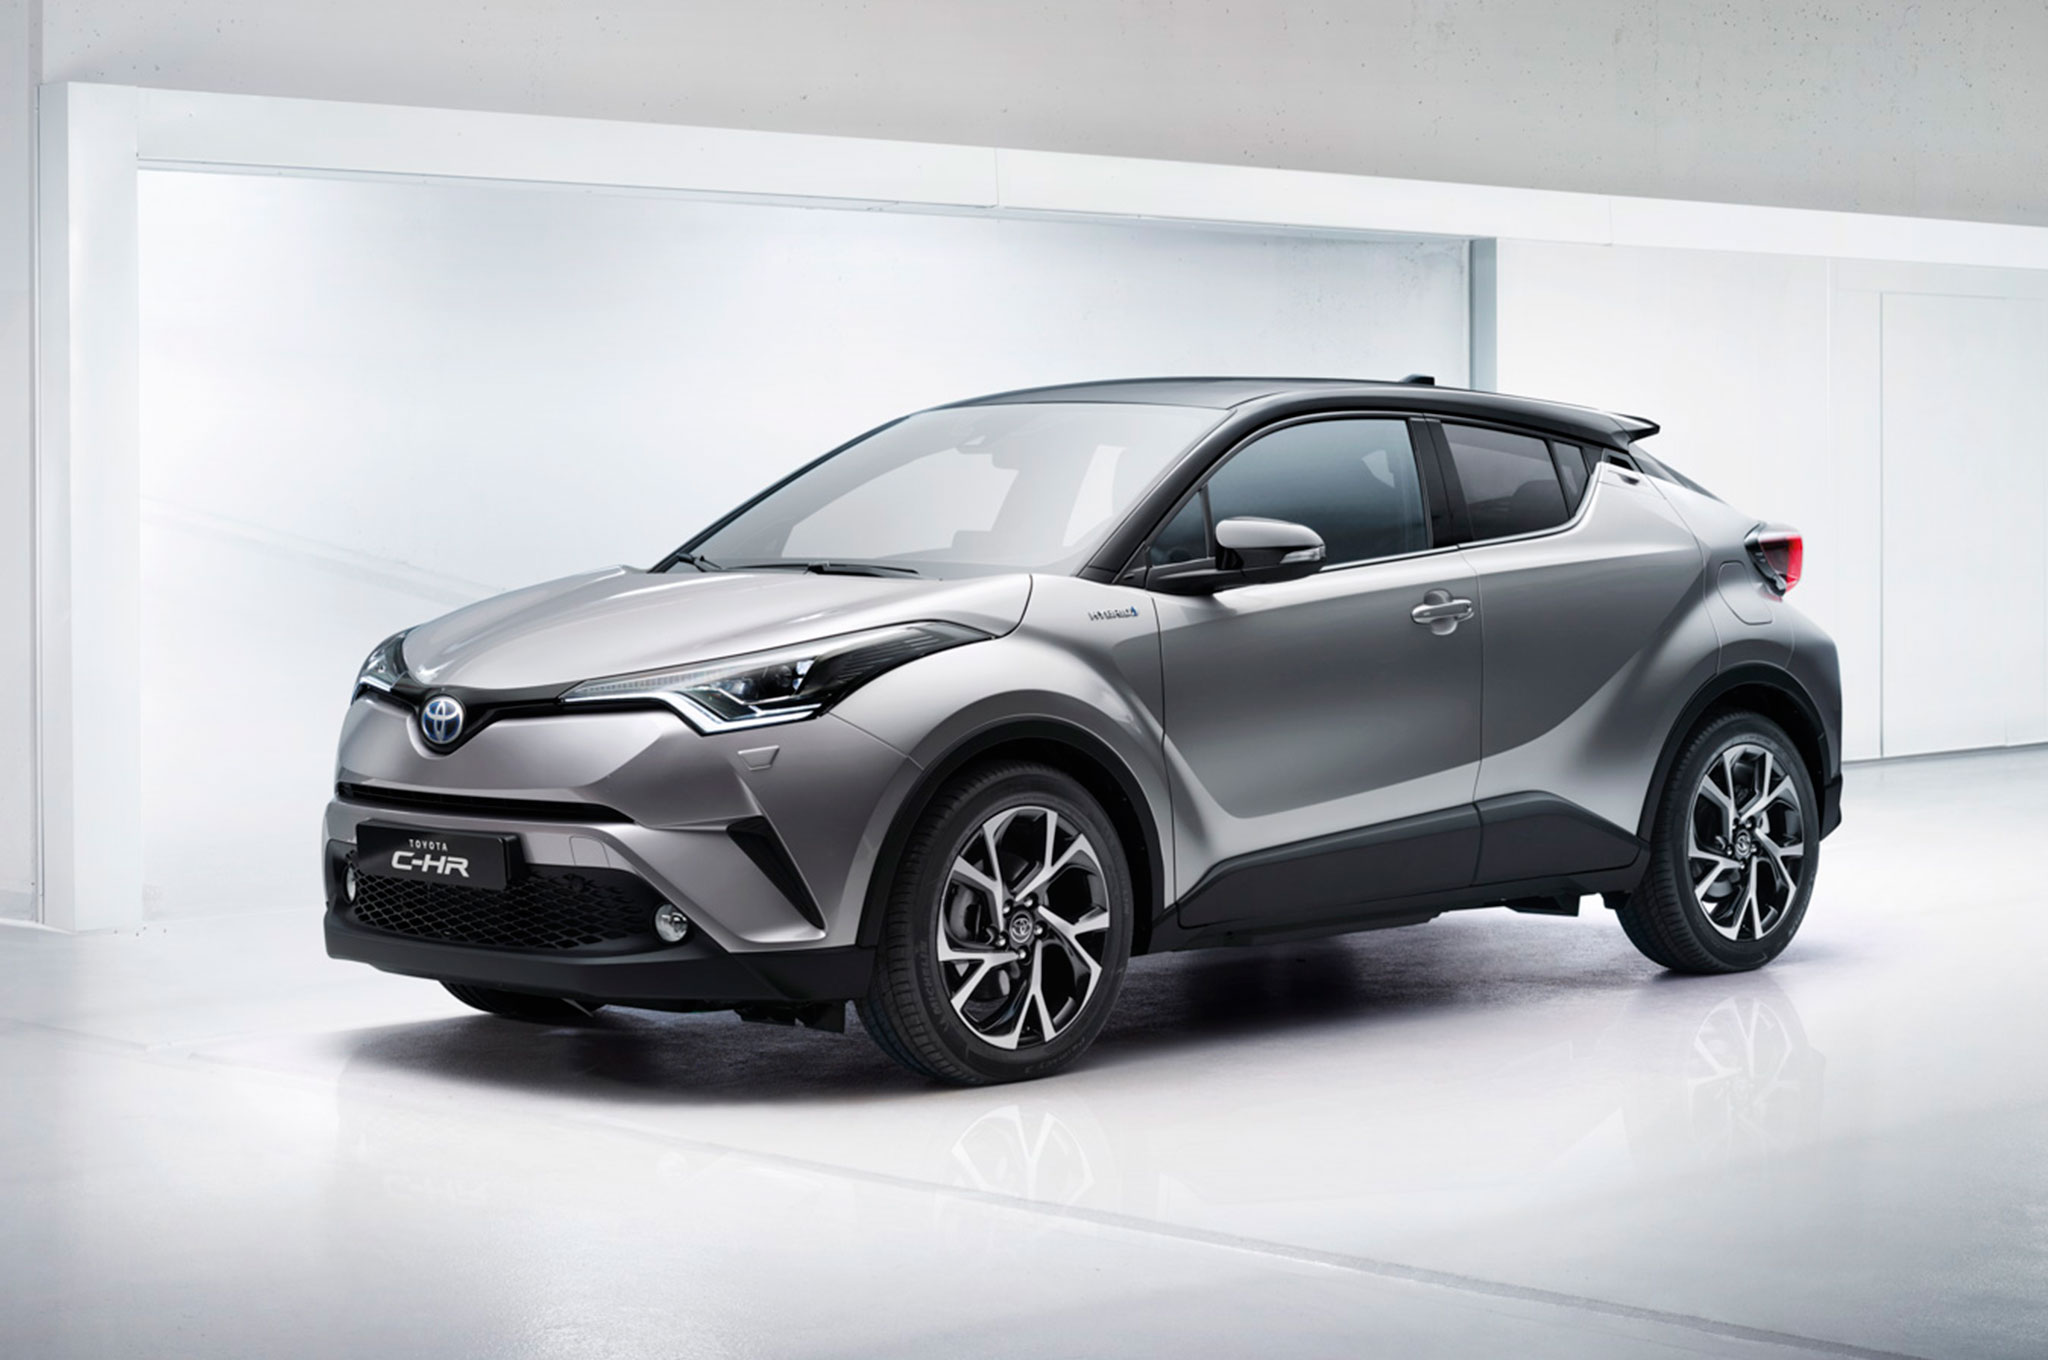 Car seating capacity compact crossover cars toyota cars toyota chr - 4 26